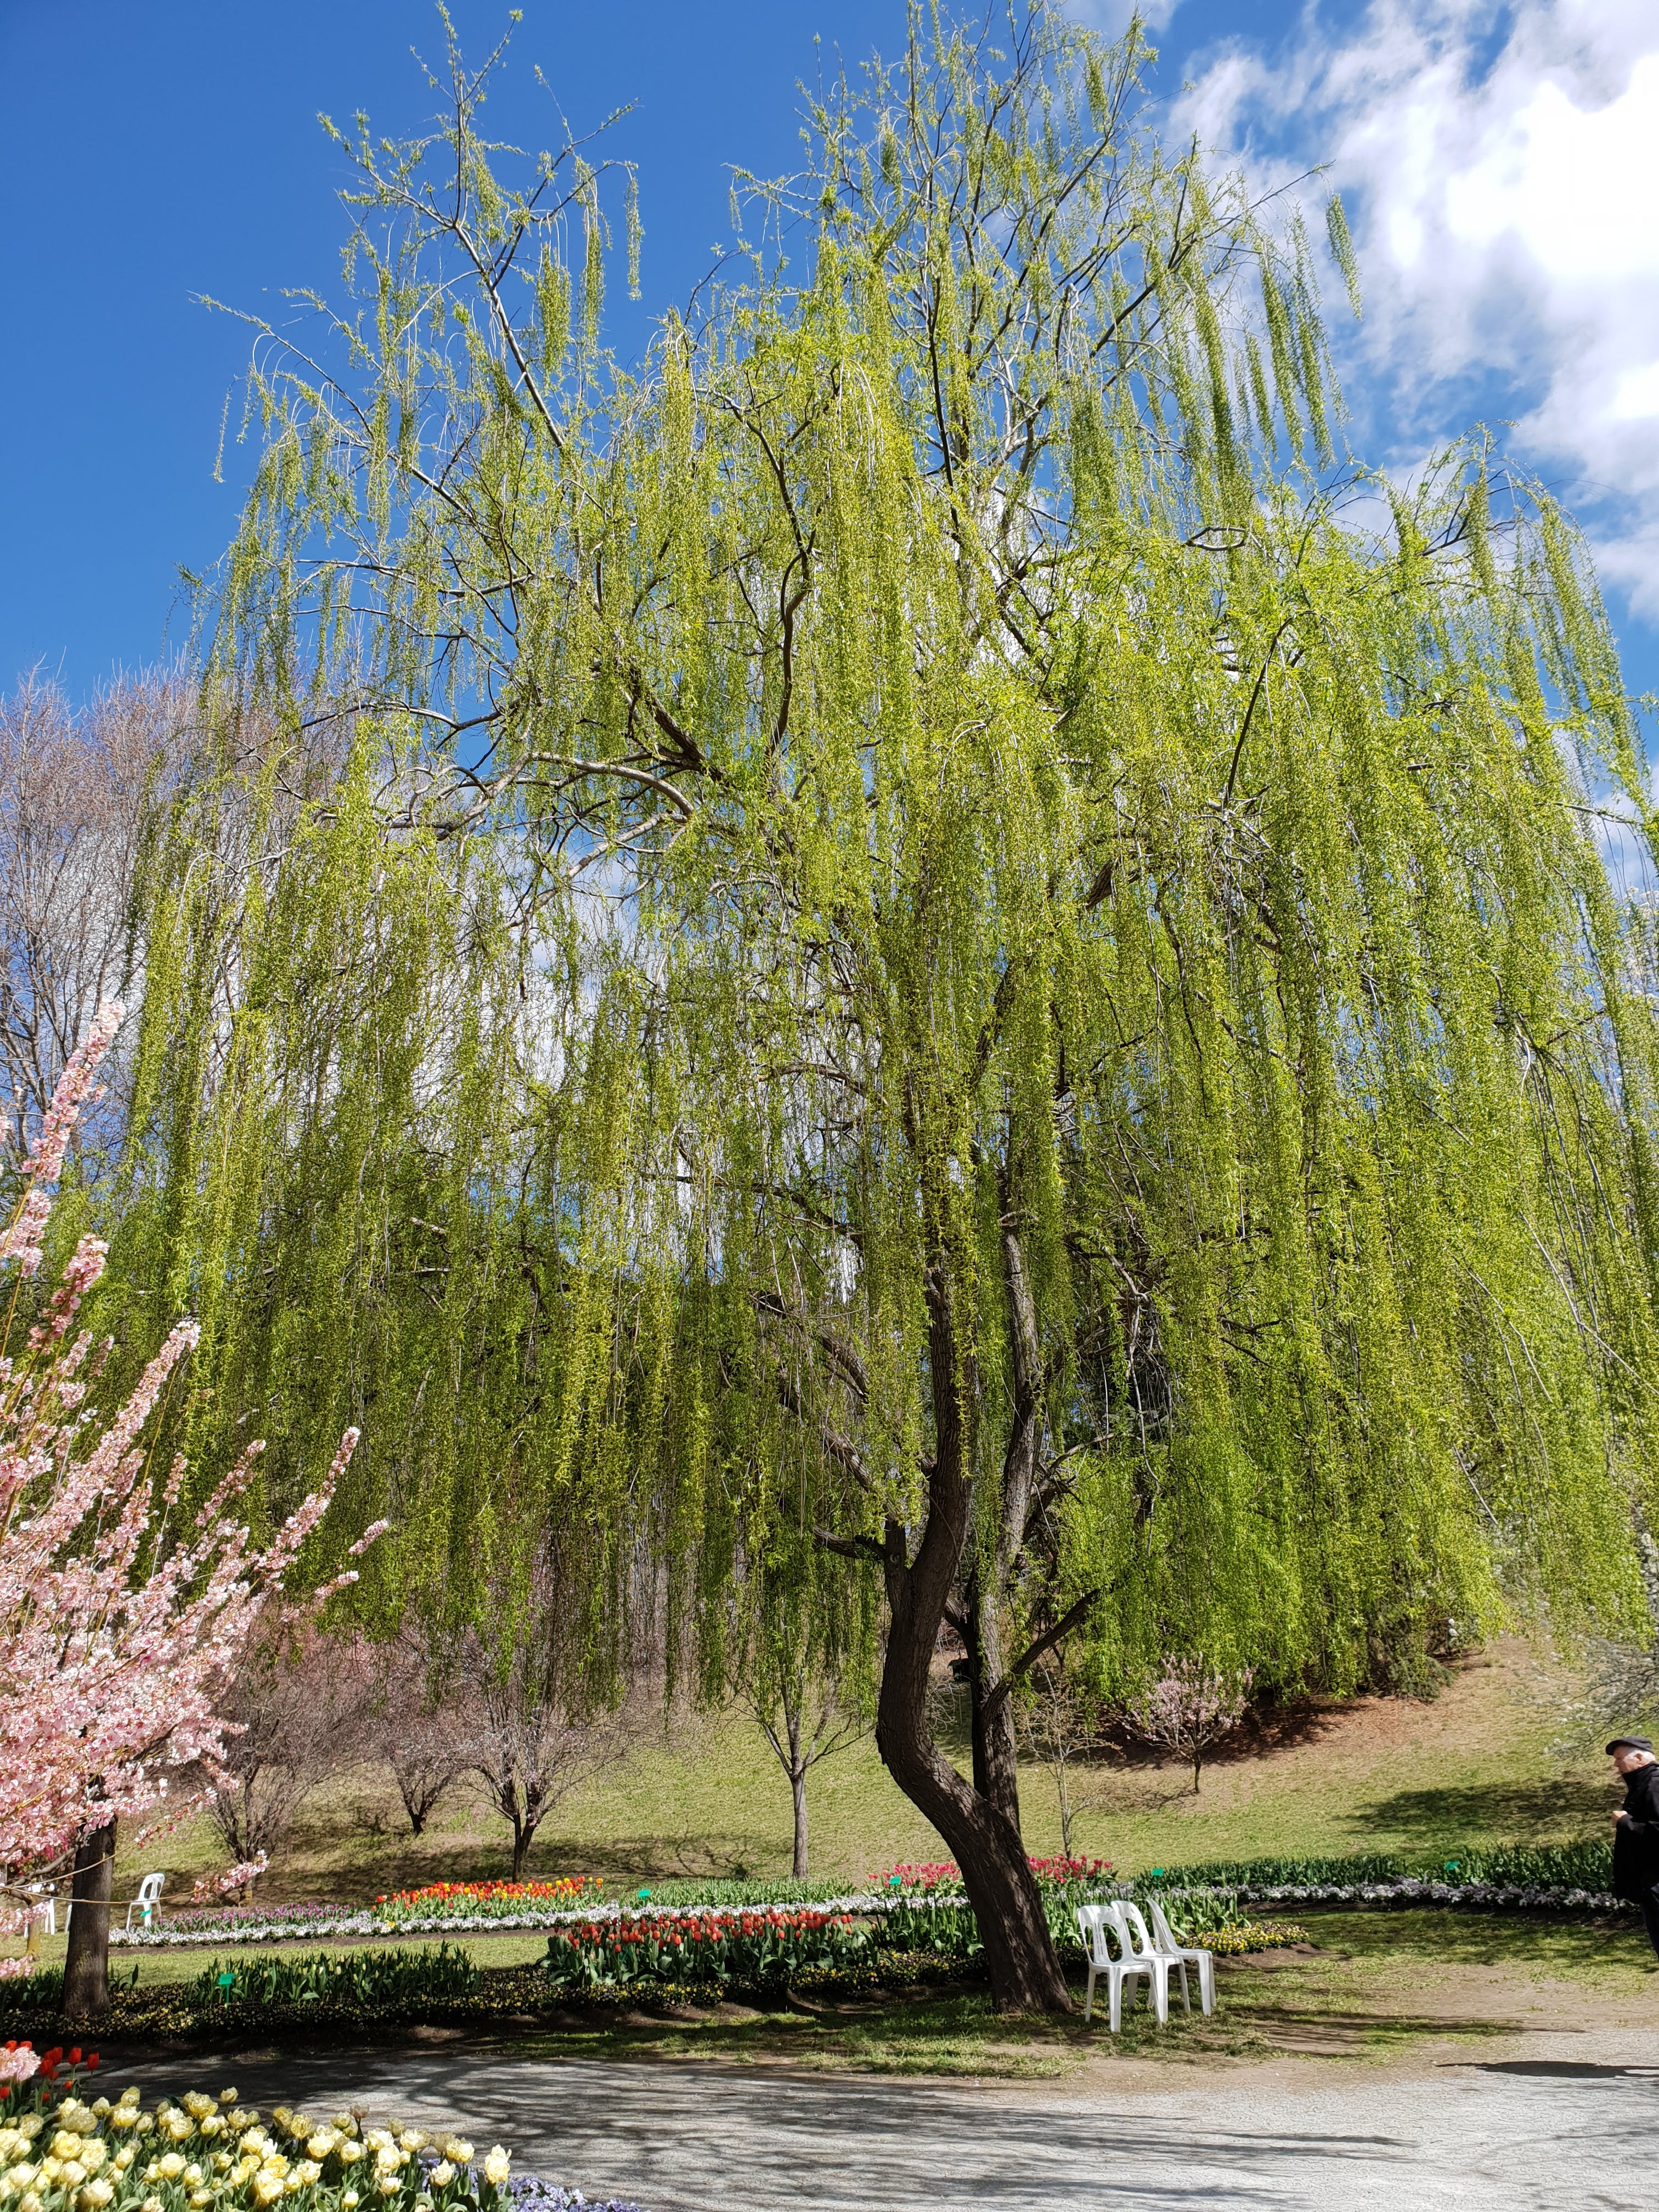 Free stock photo of tree, Willow, willow tree